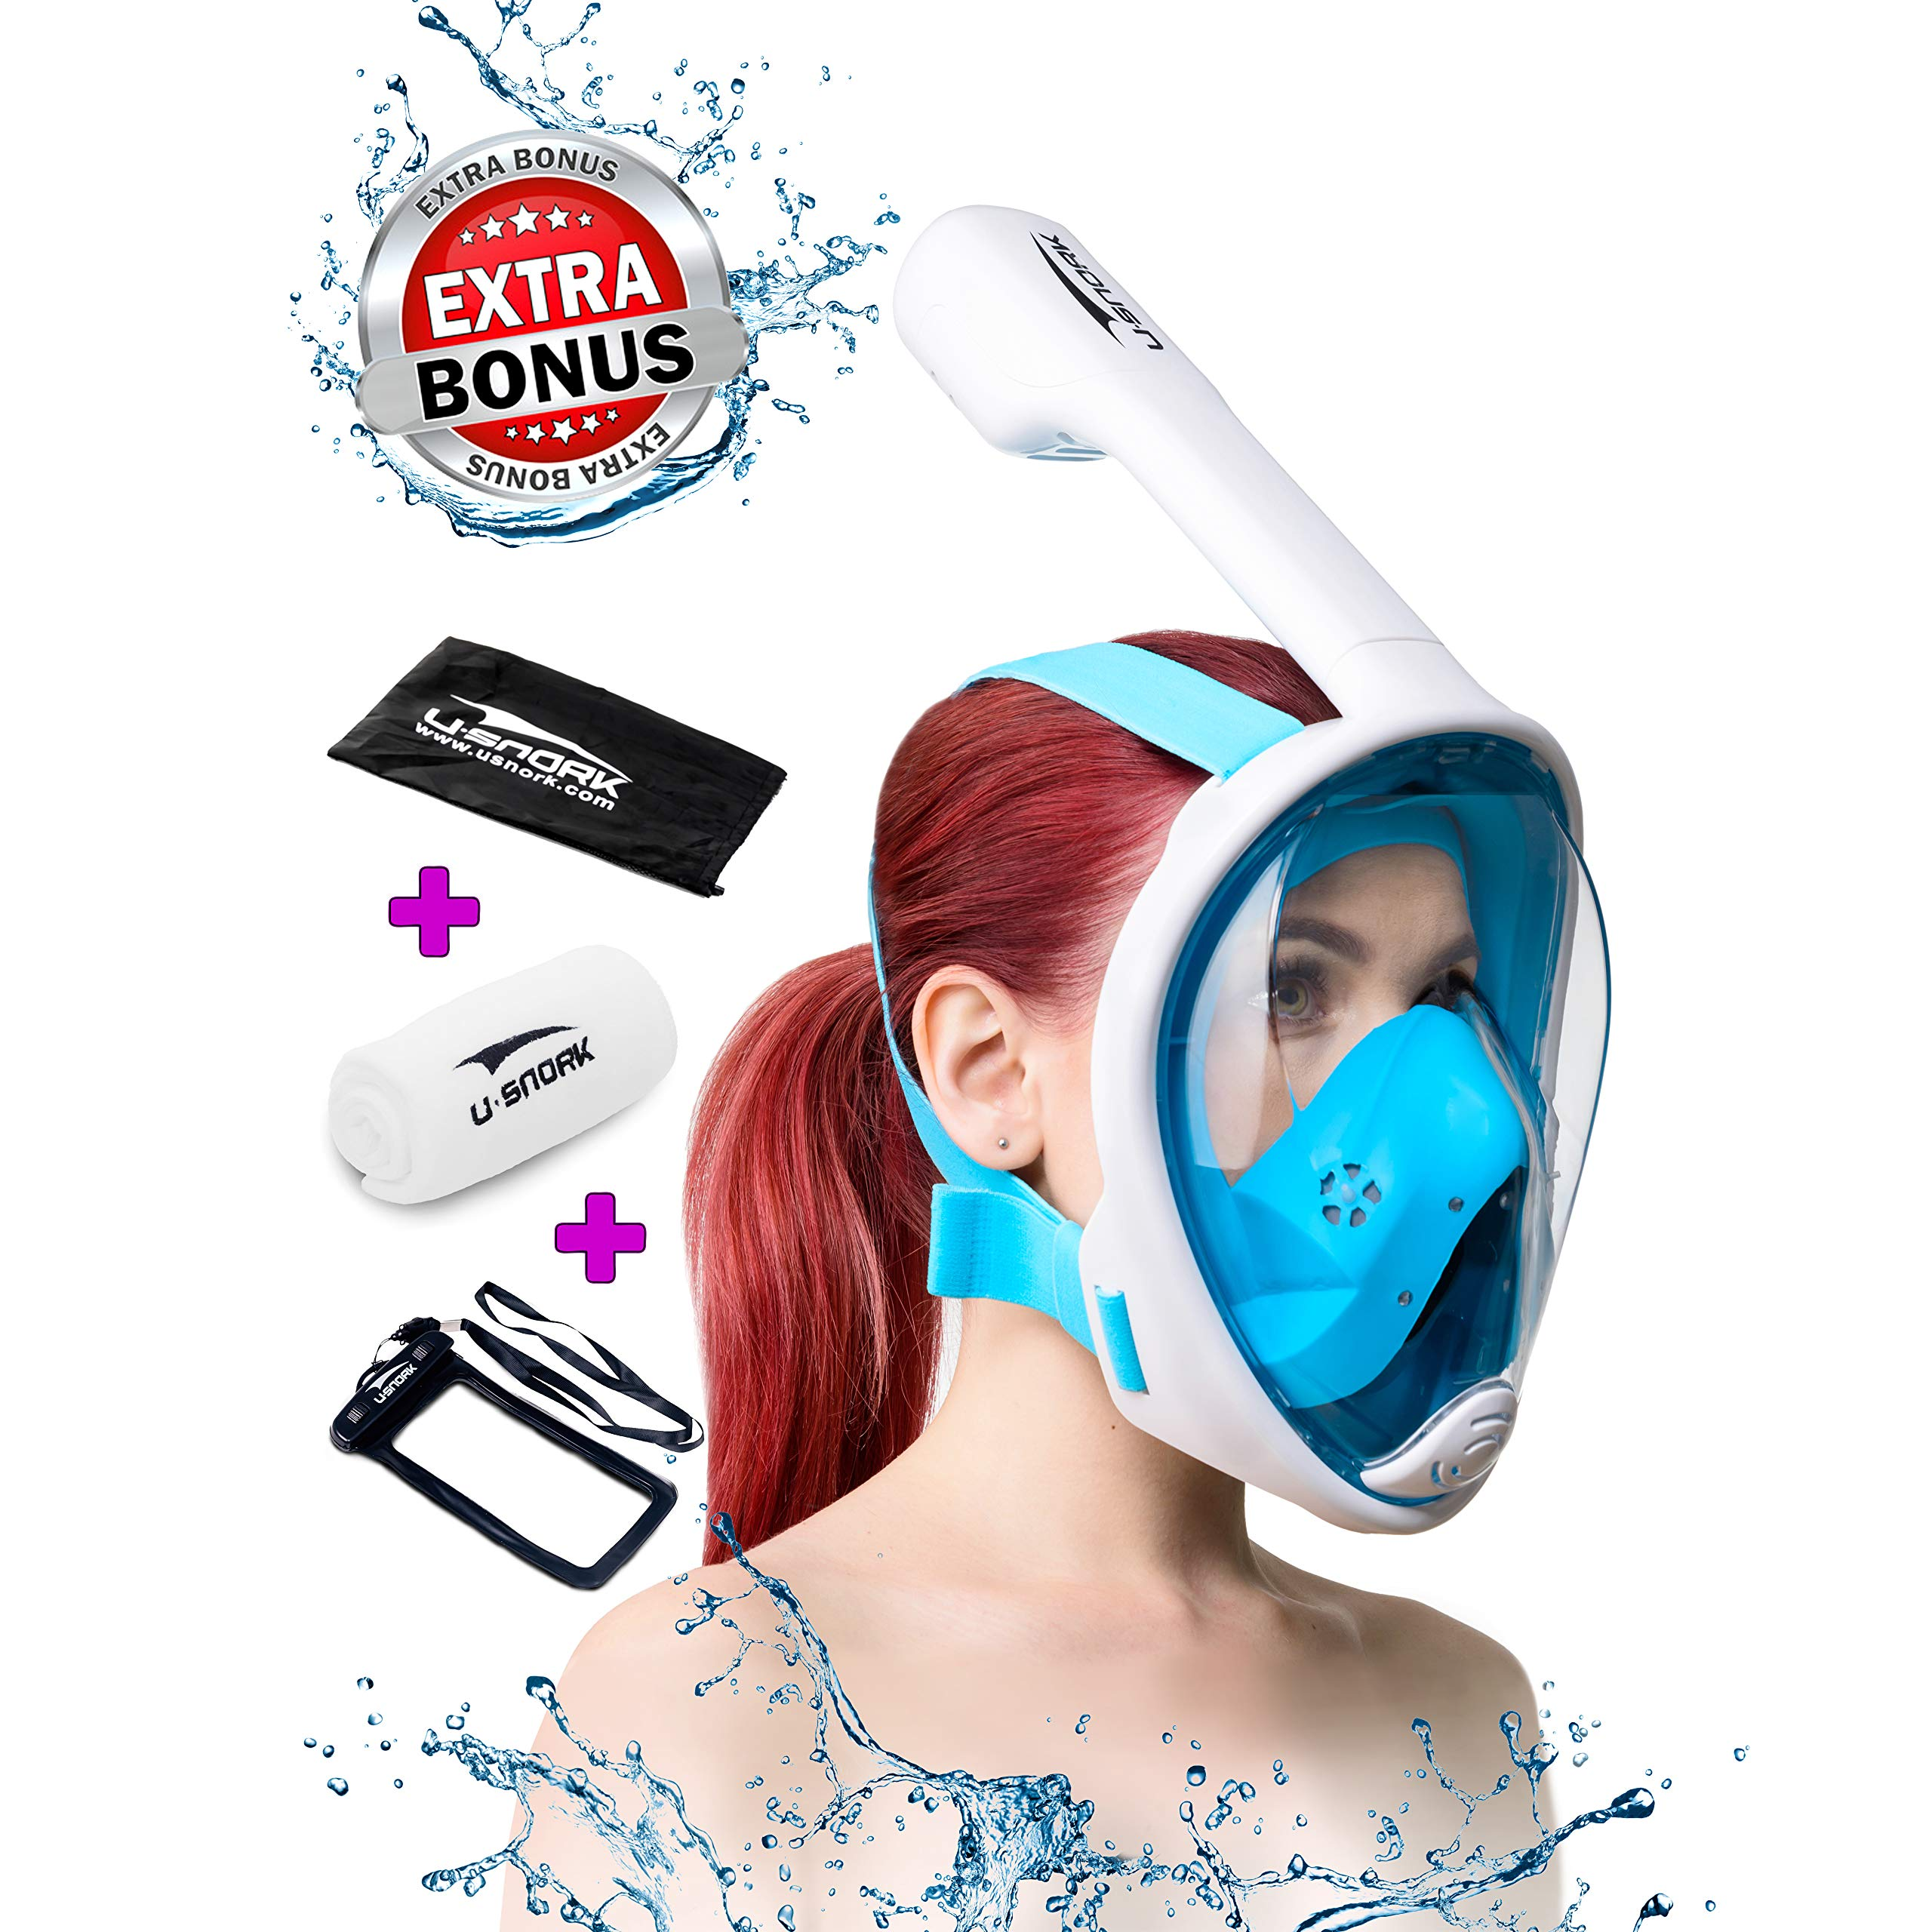 Snorkel Mask Full Face for Kids and Adults - Anti-Fog and Anti-Leak Easybreath Snorkeling Gear - Dive Scuba Mask with 180 Panoramic View and 4 Bonus Items as Snorkel Set (White-Blue, S/M) by Usnork